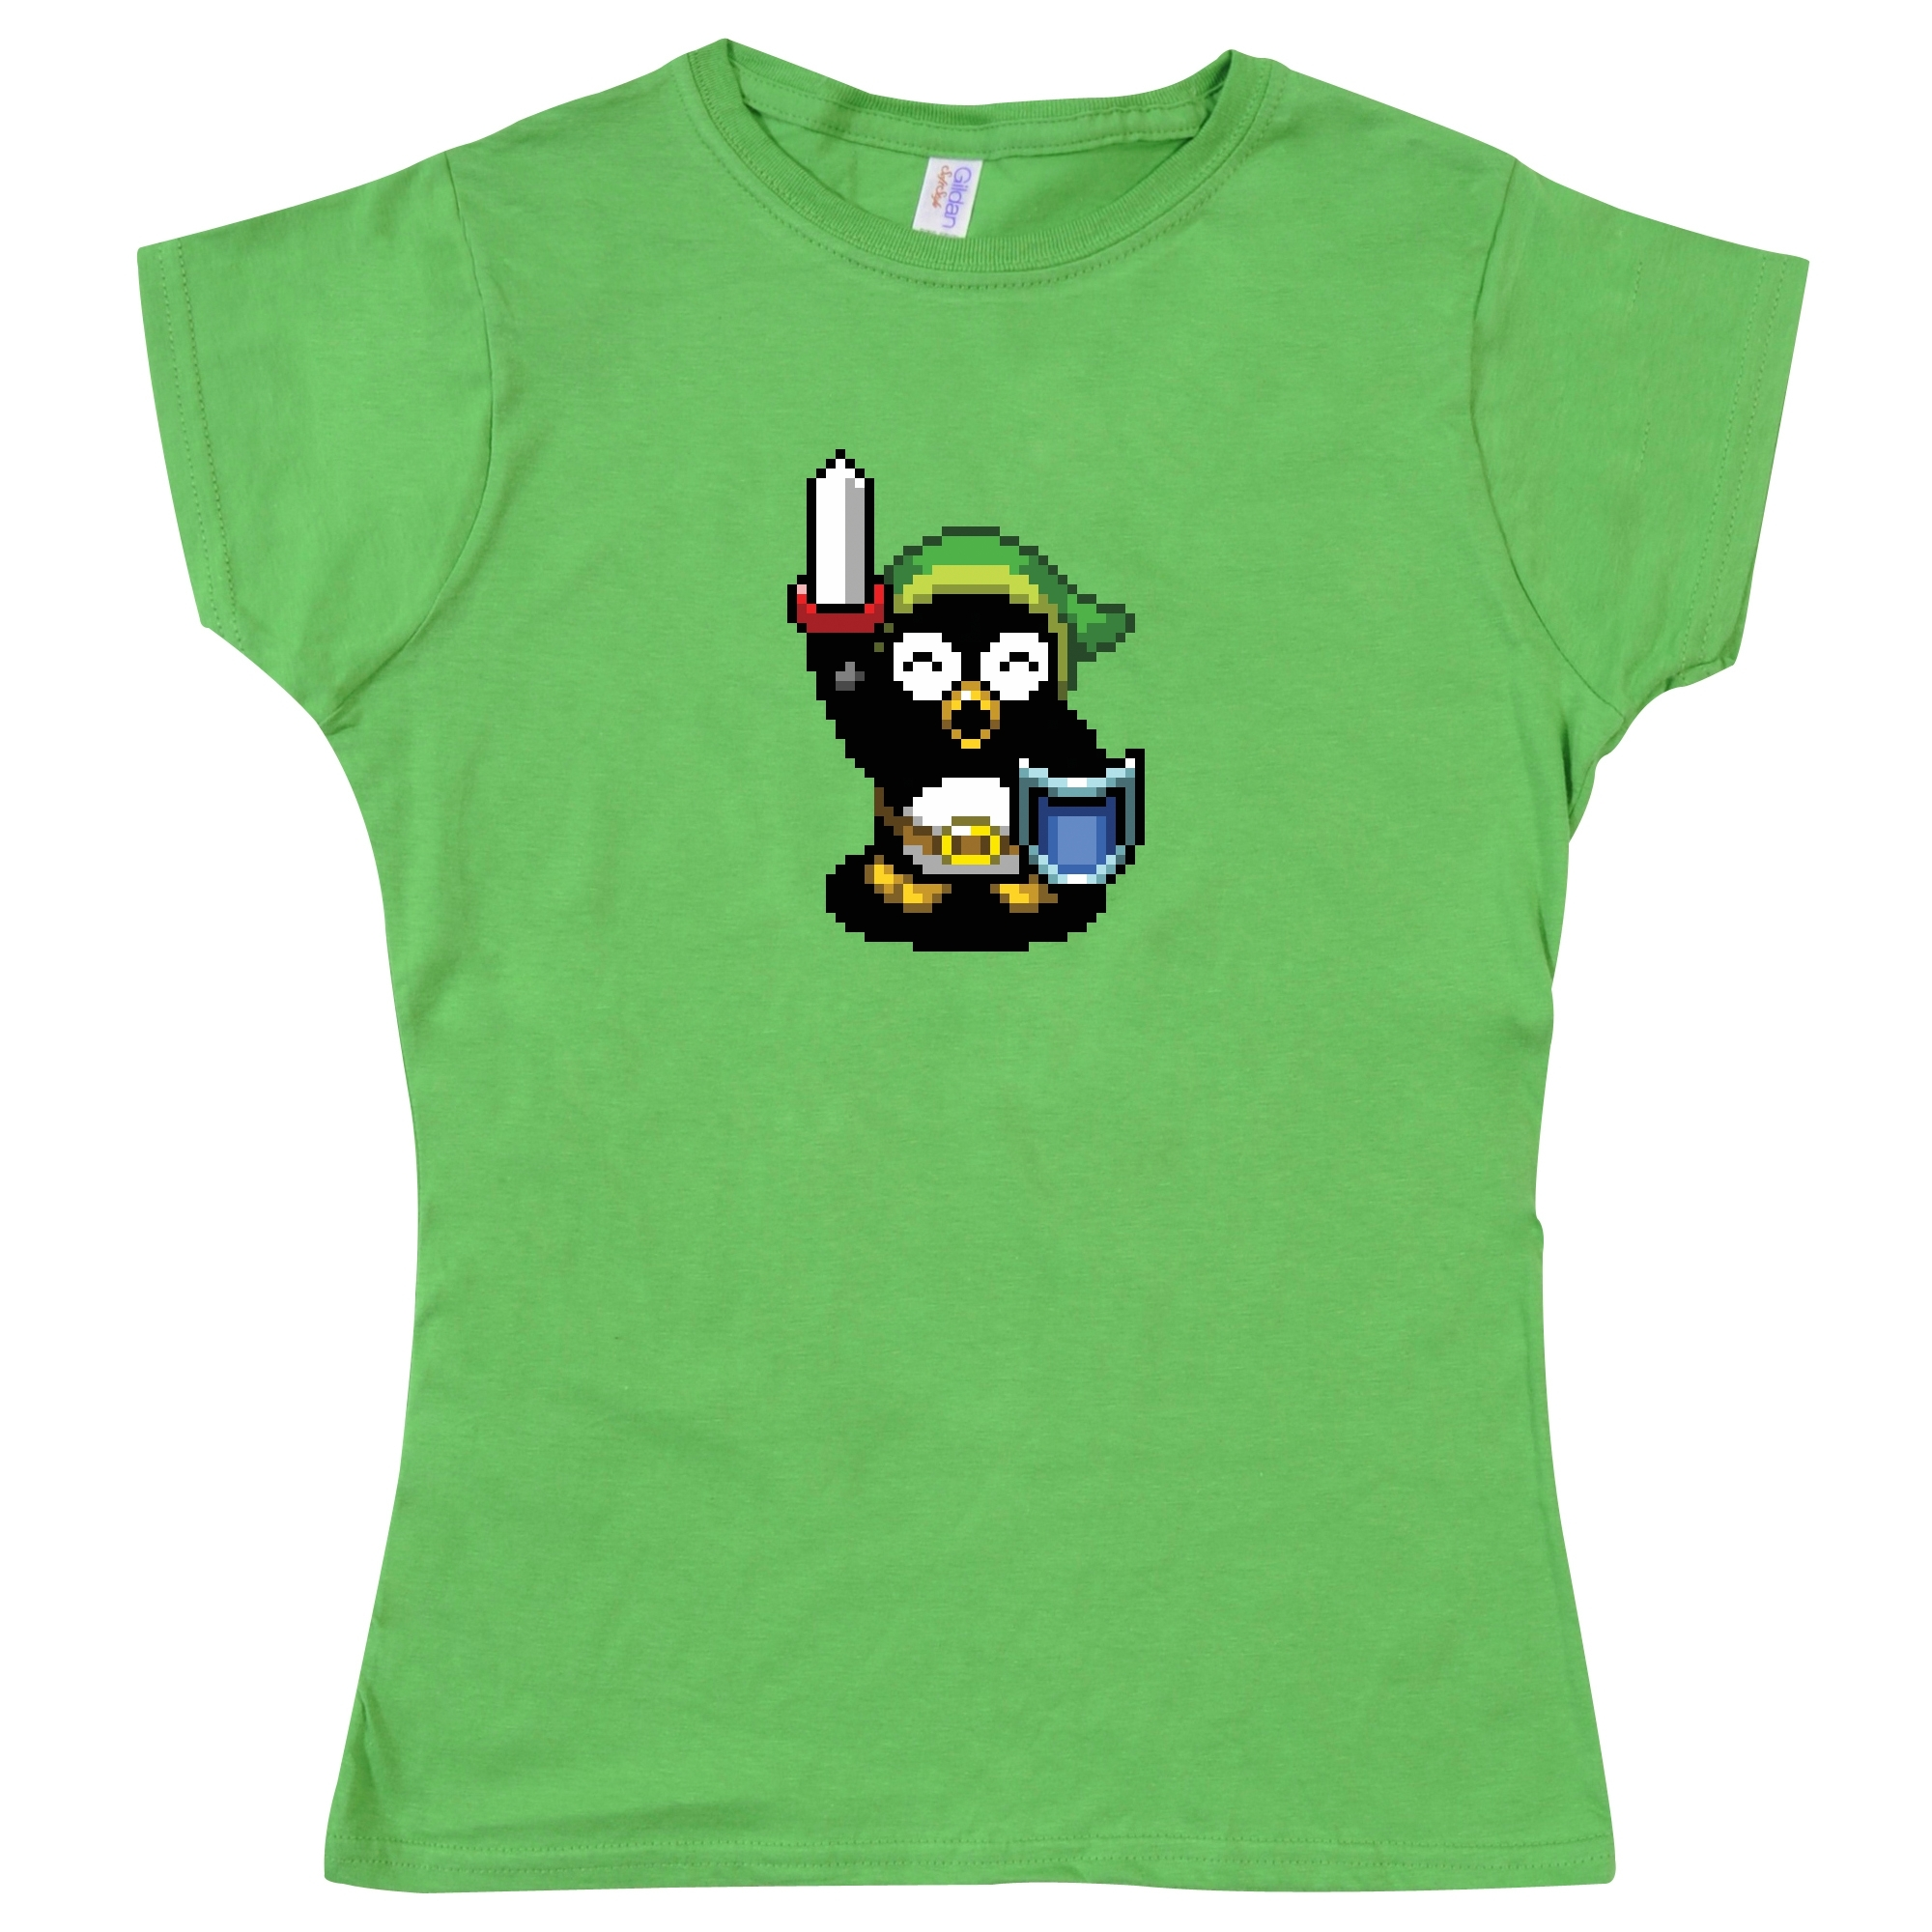 Photograph: Legend of Penguin Girls T-shirt